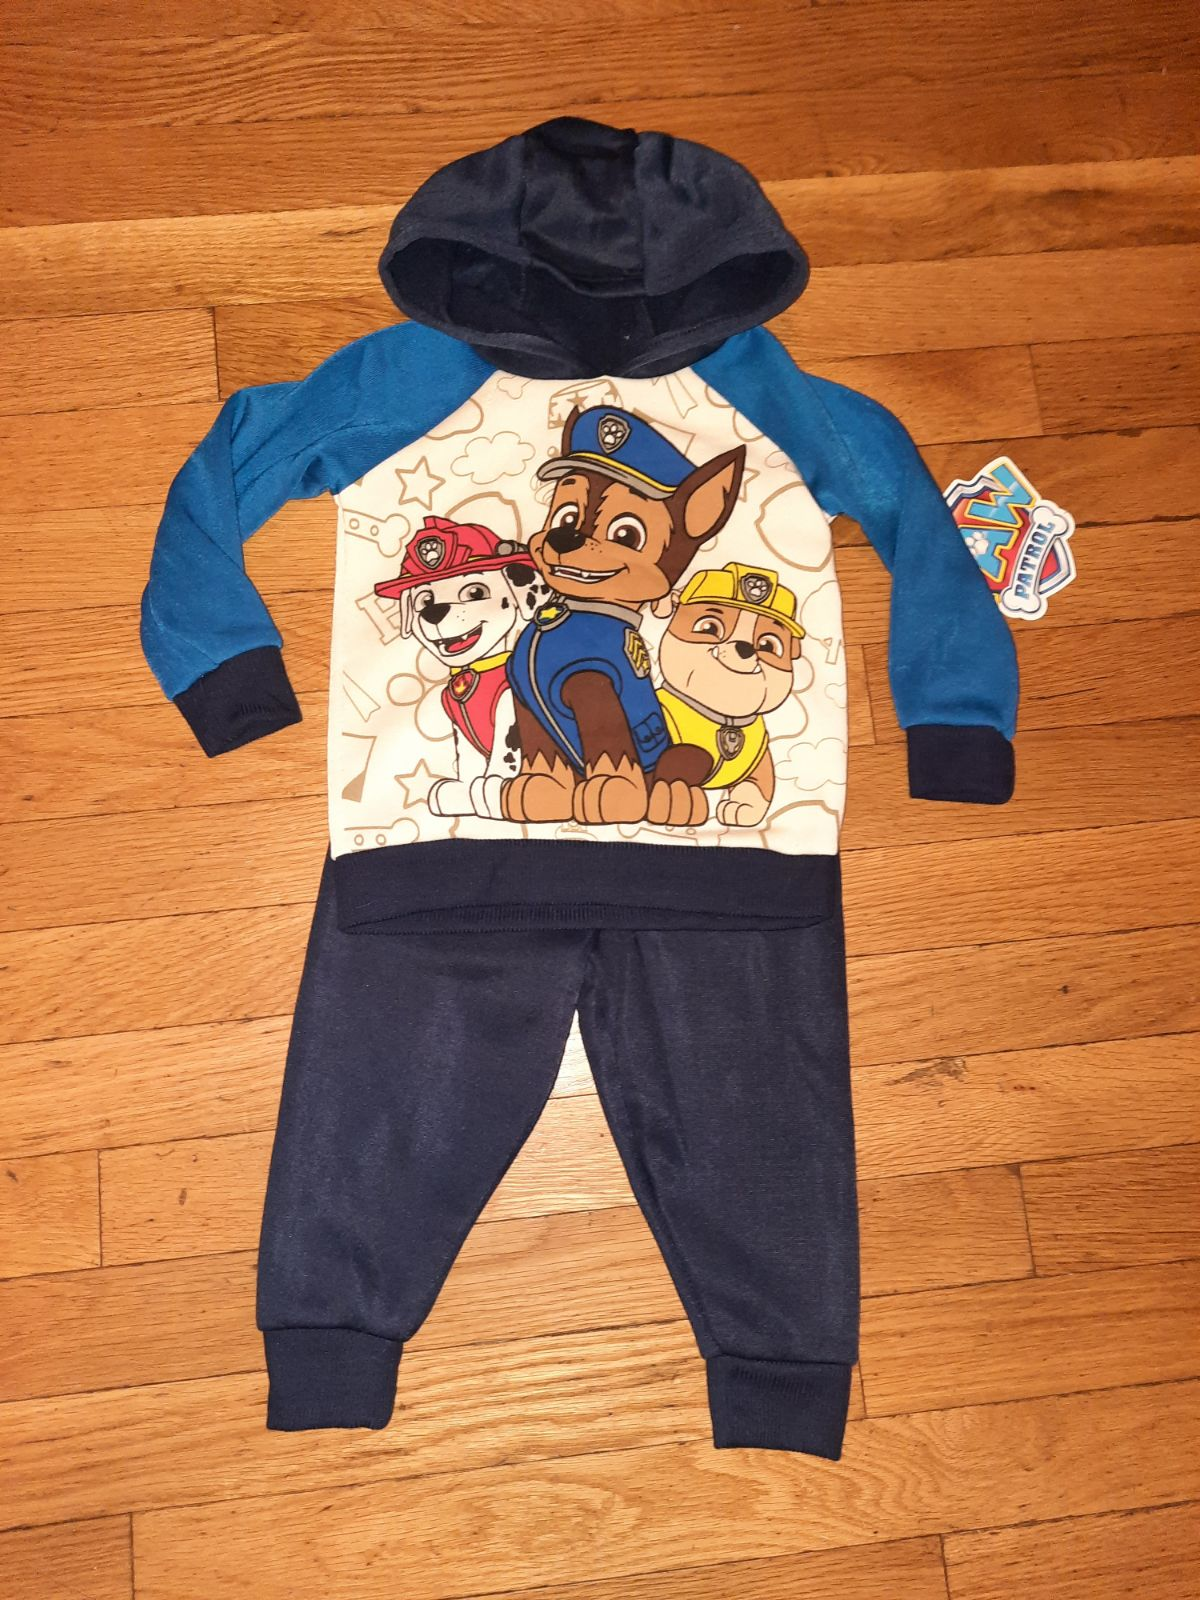 NEW Paw Patrol 12m boys outfit